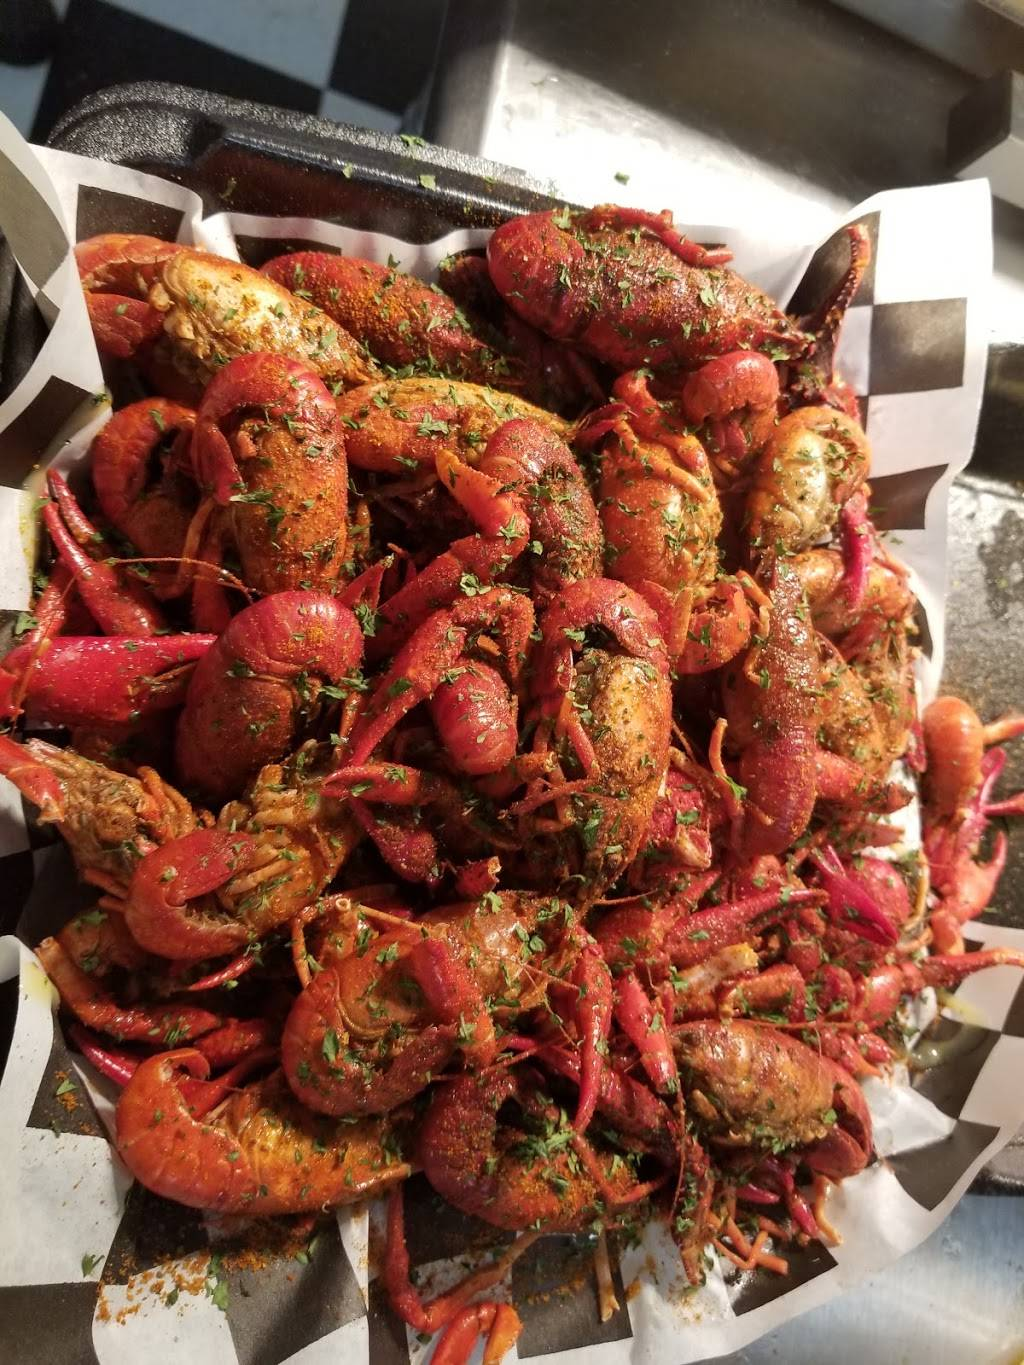 Crab Spot Florence | restaurant | 811 S Irby St, Florence, SC 29501, USA | 8434076263 OR +1 843-407-6263